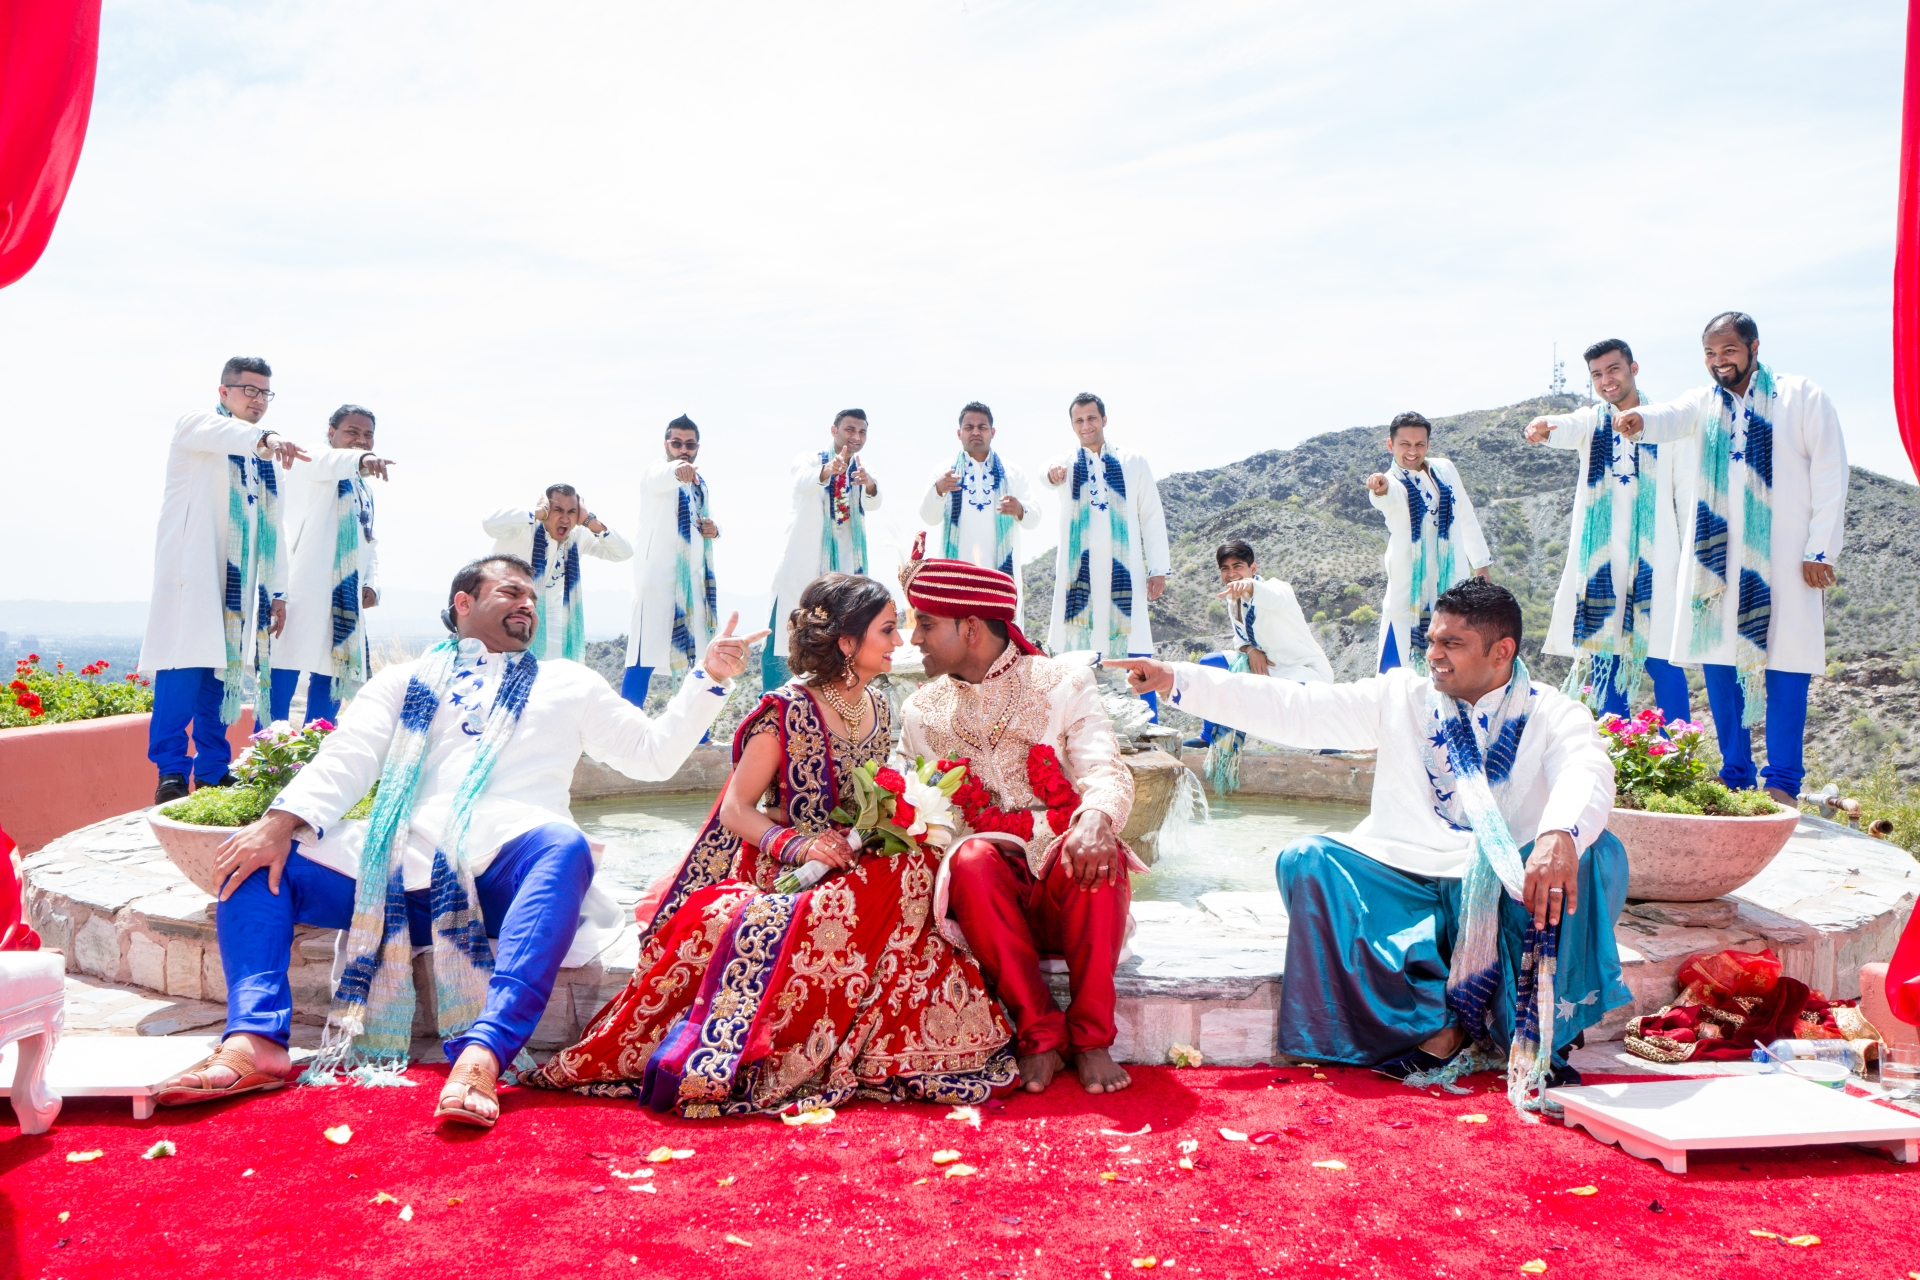 Indian bride and groom taking a funny photo in their mandap, surrounded by the groomsmen